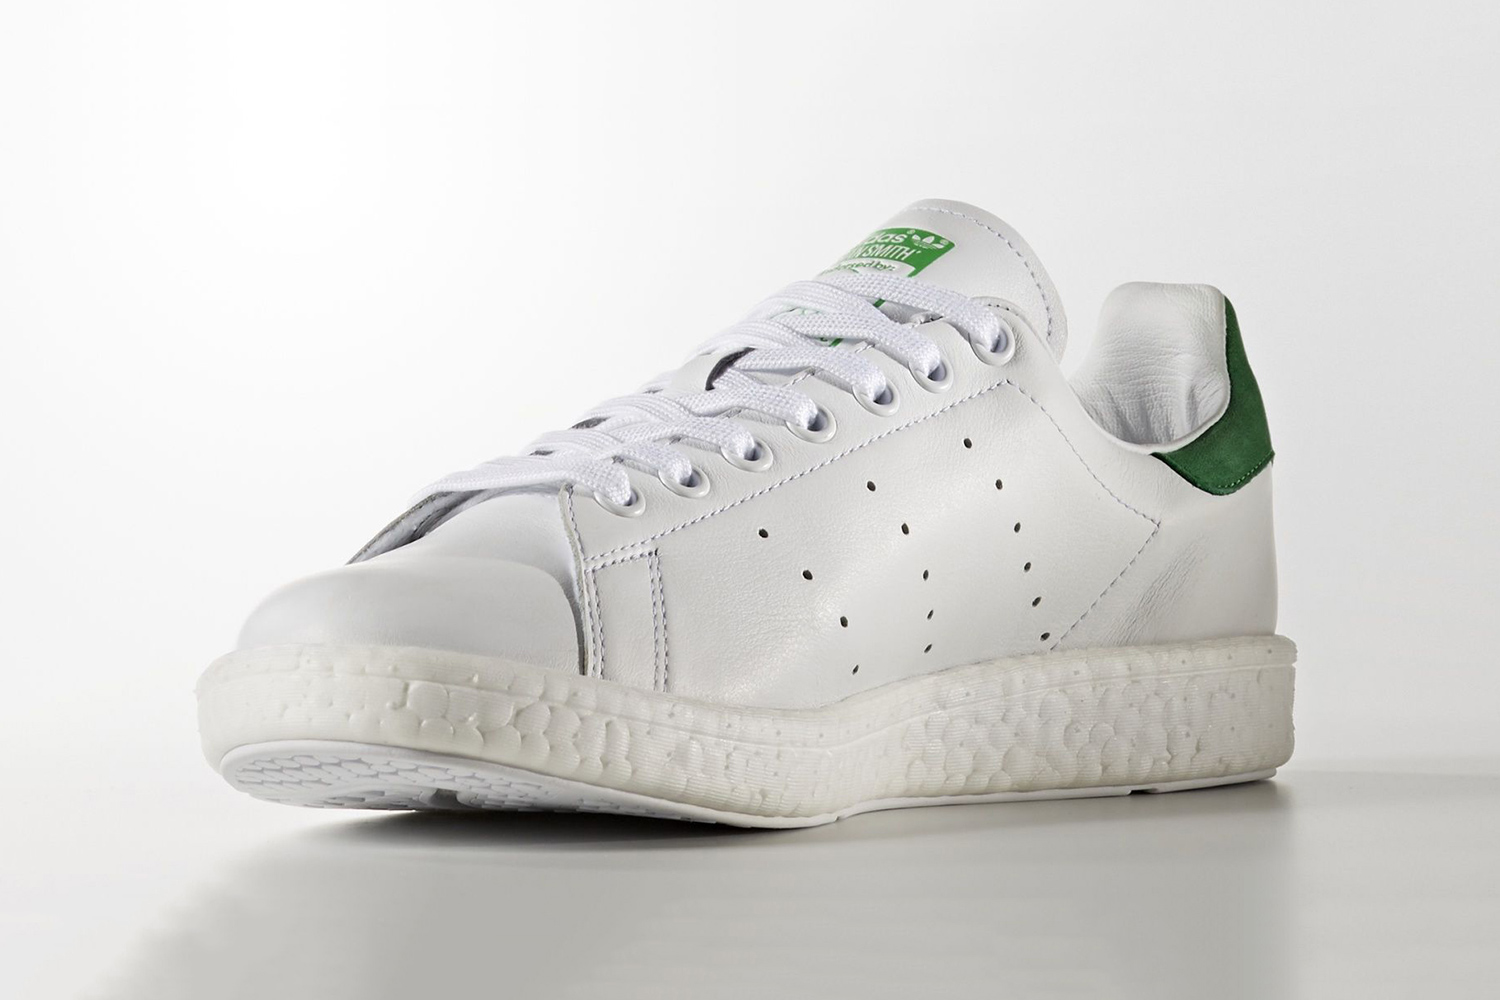 Adidas Stan Smith Boost White Green Cool Sneakers